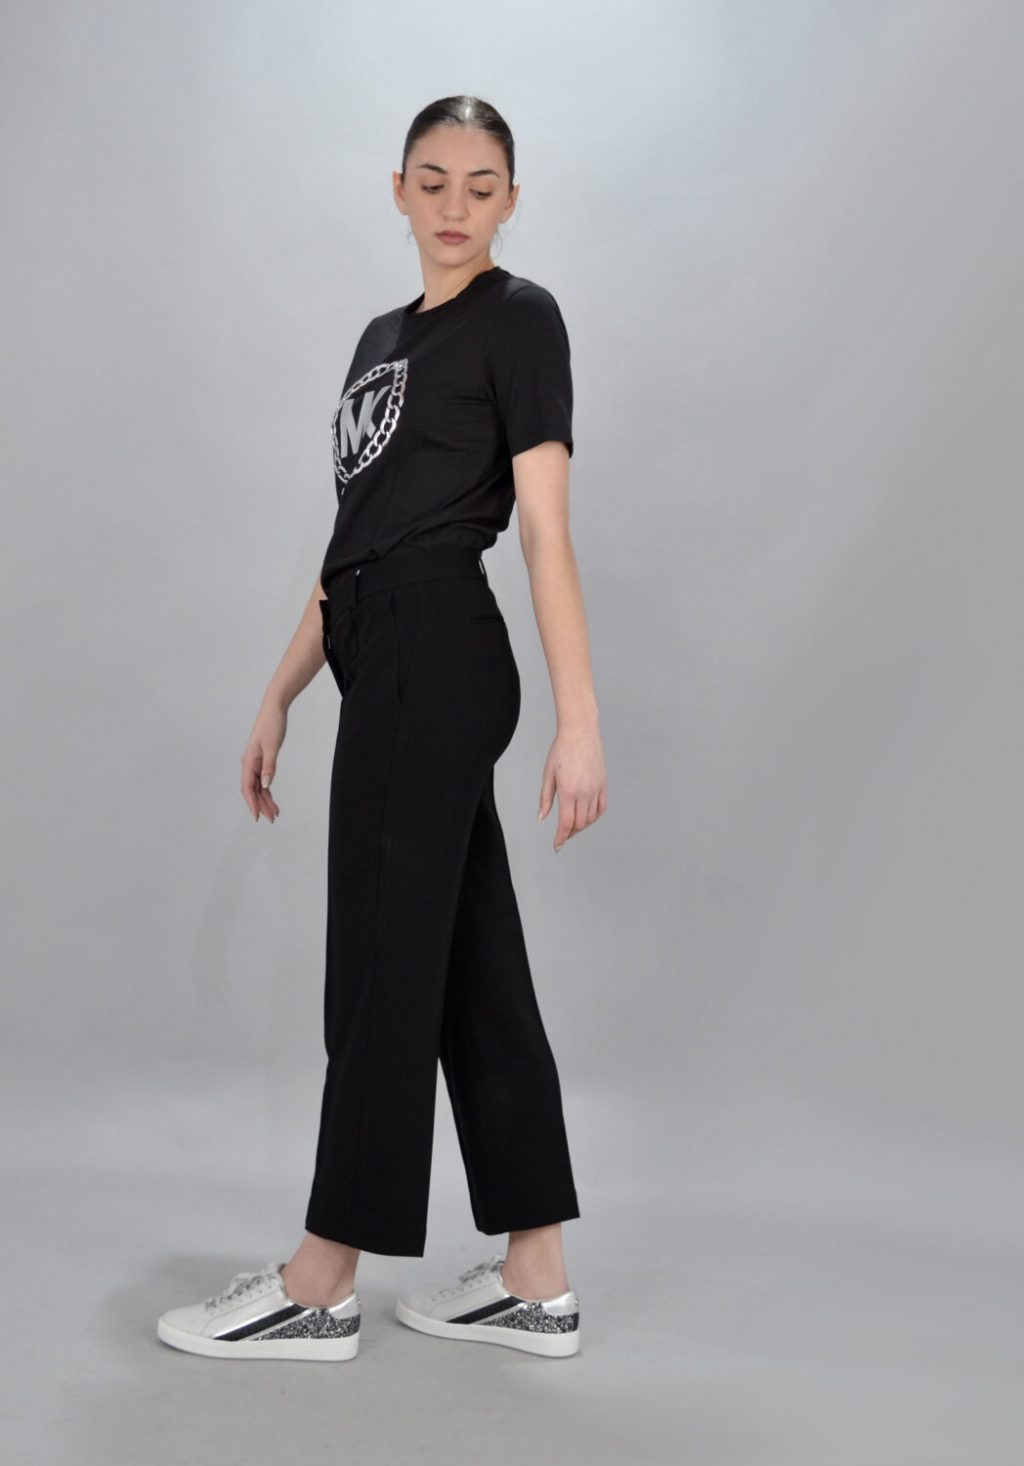 Collection Spring - Summer 2021 MICHAEL KORS CREPE CROPPED PANTS